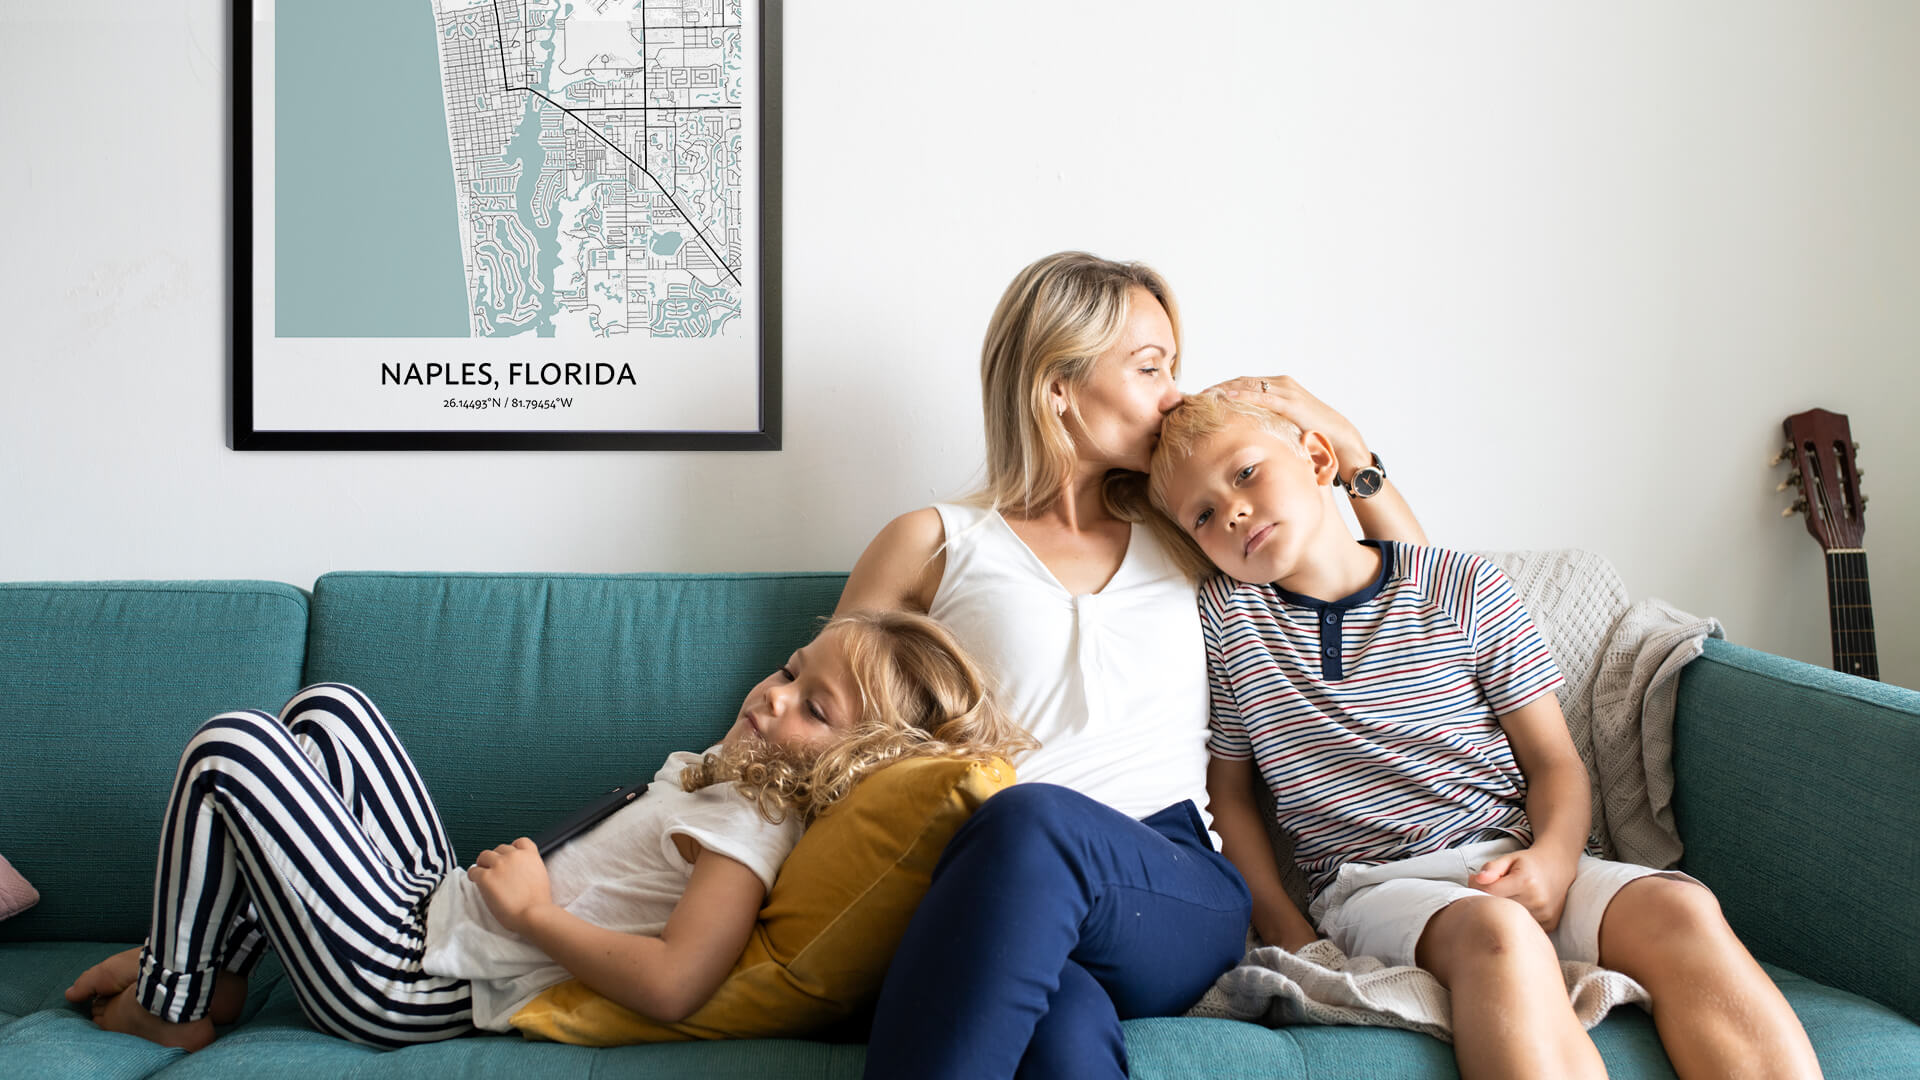 Naples map poster